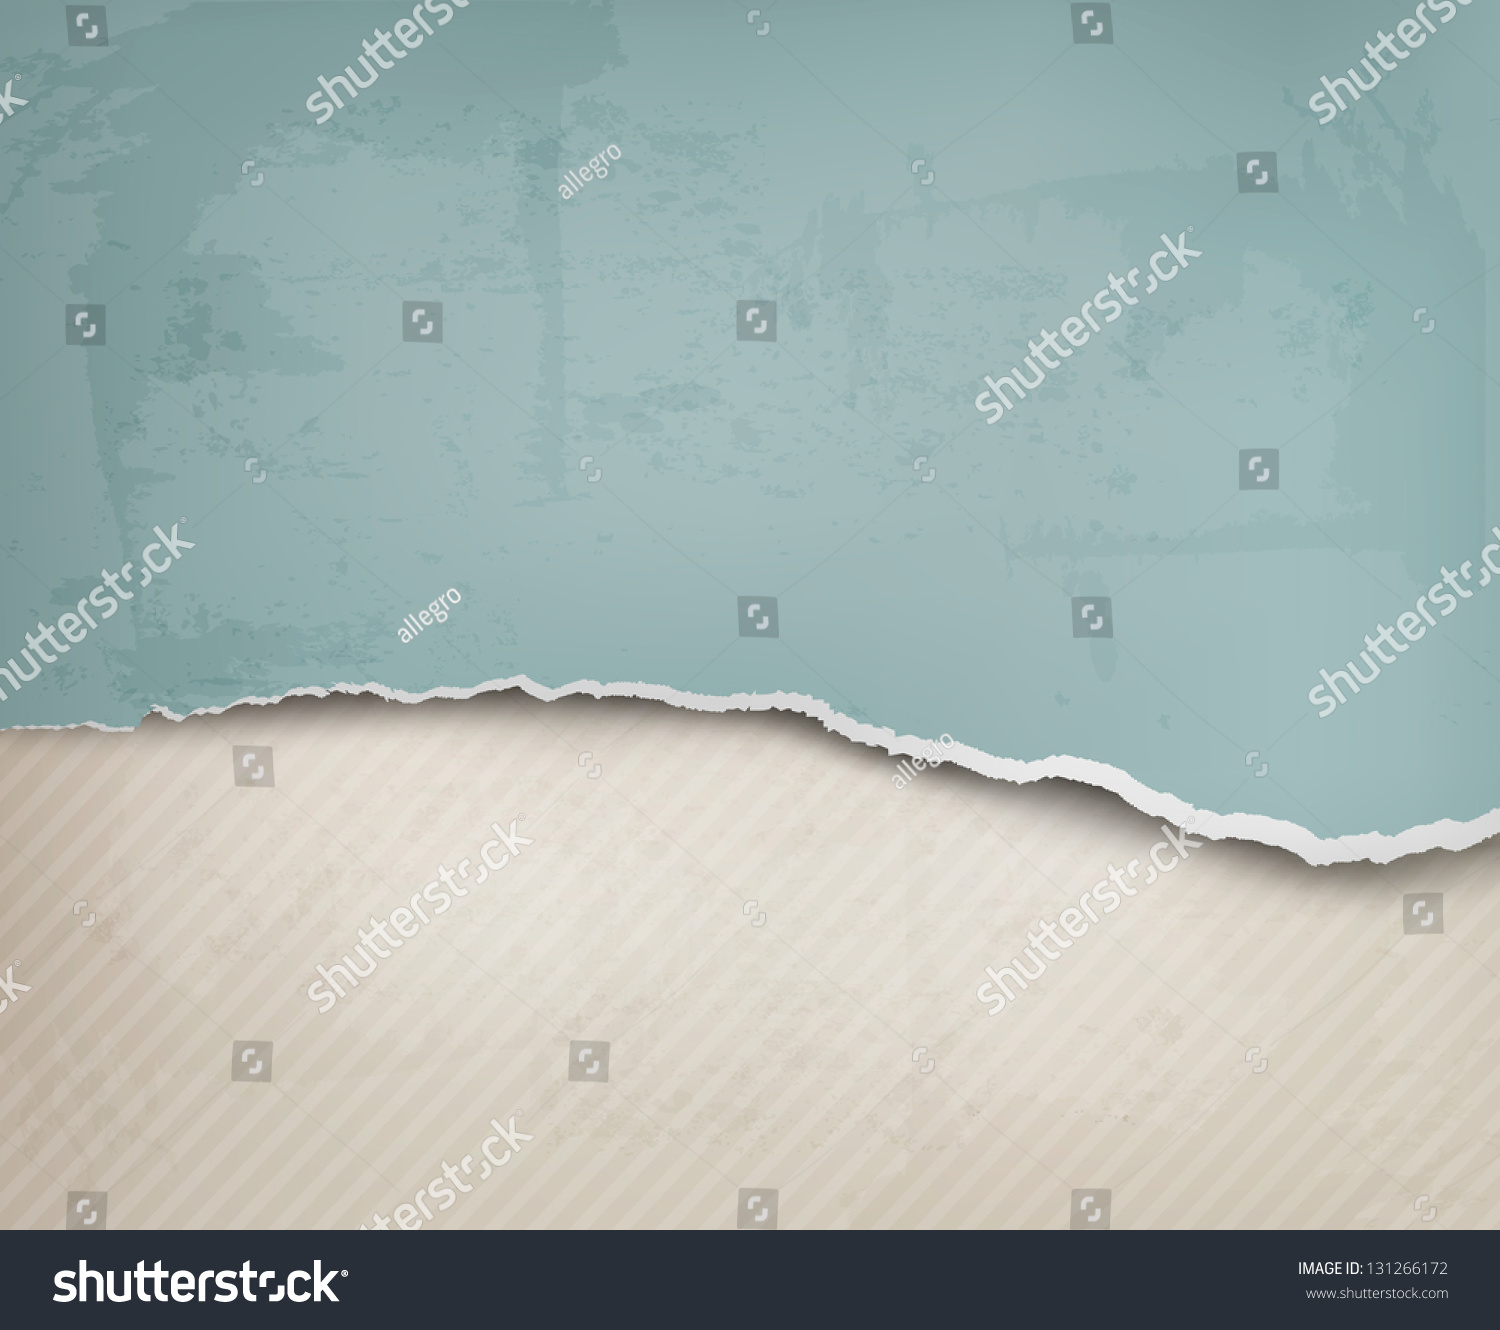 Ripped Old Paper: Vintage Background With Ripped Old Paper. Vector